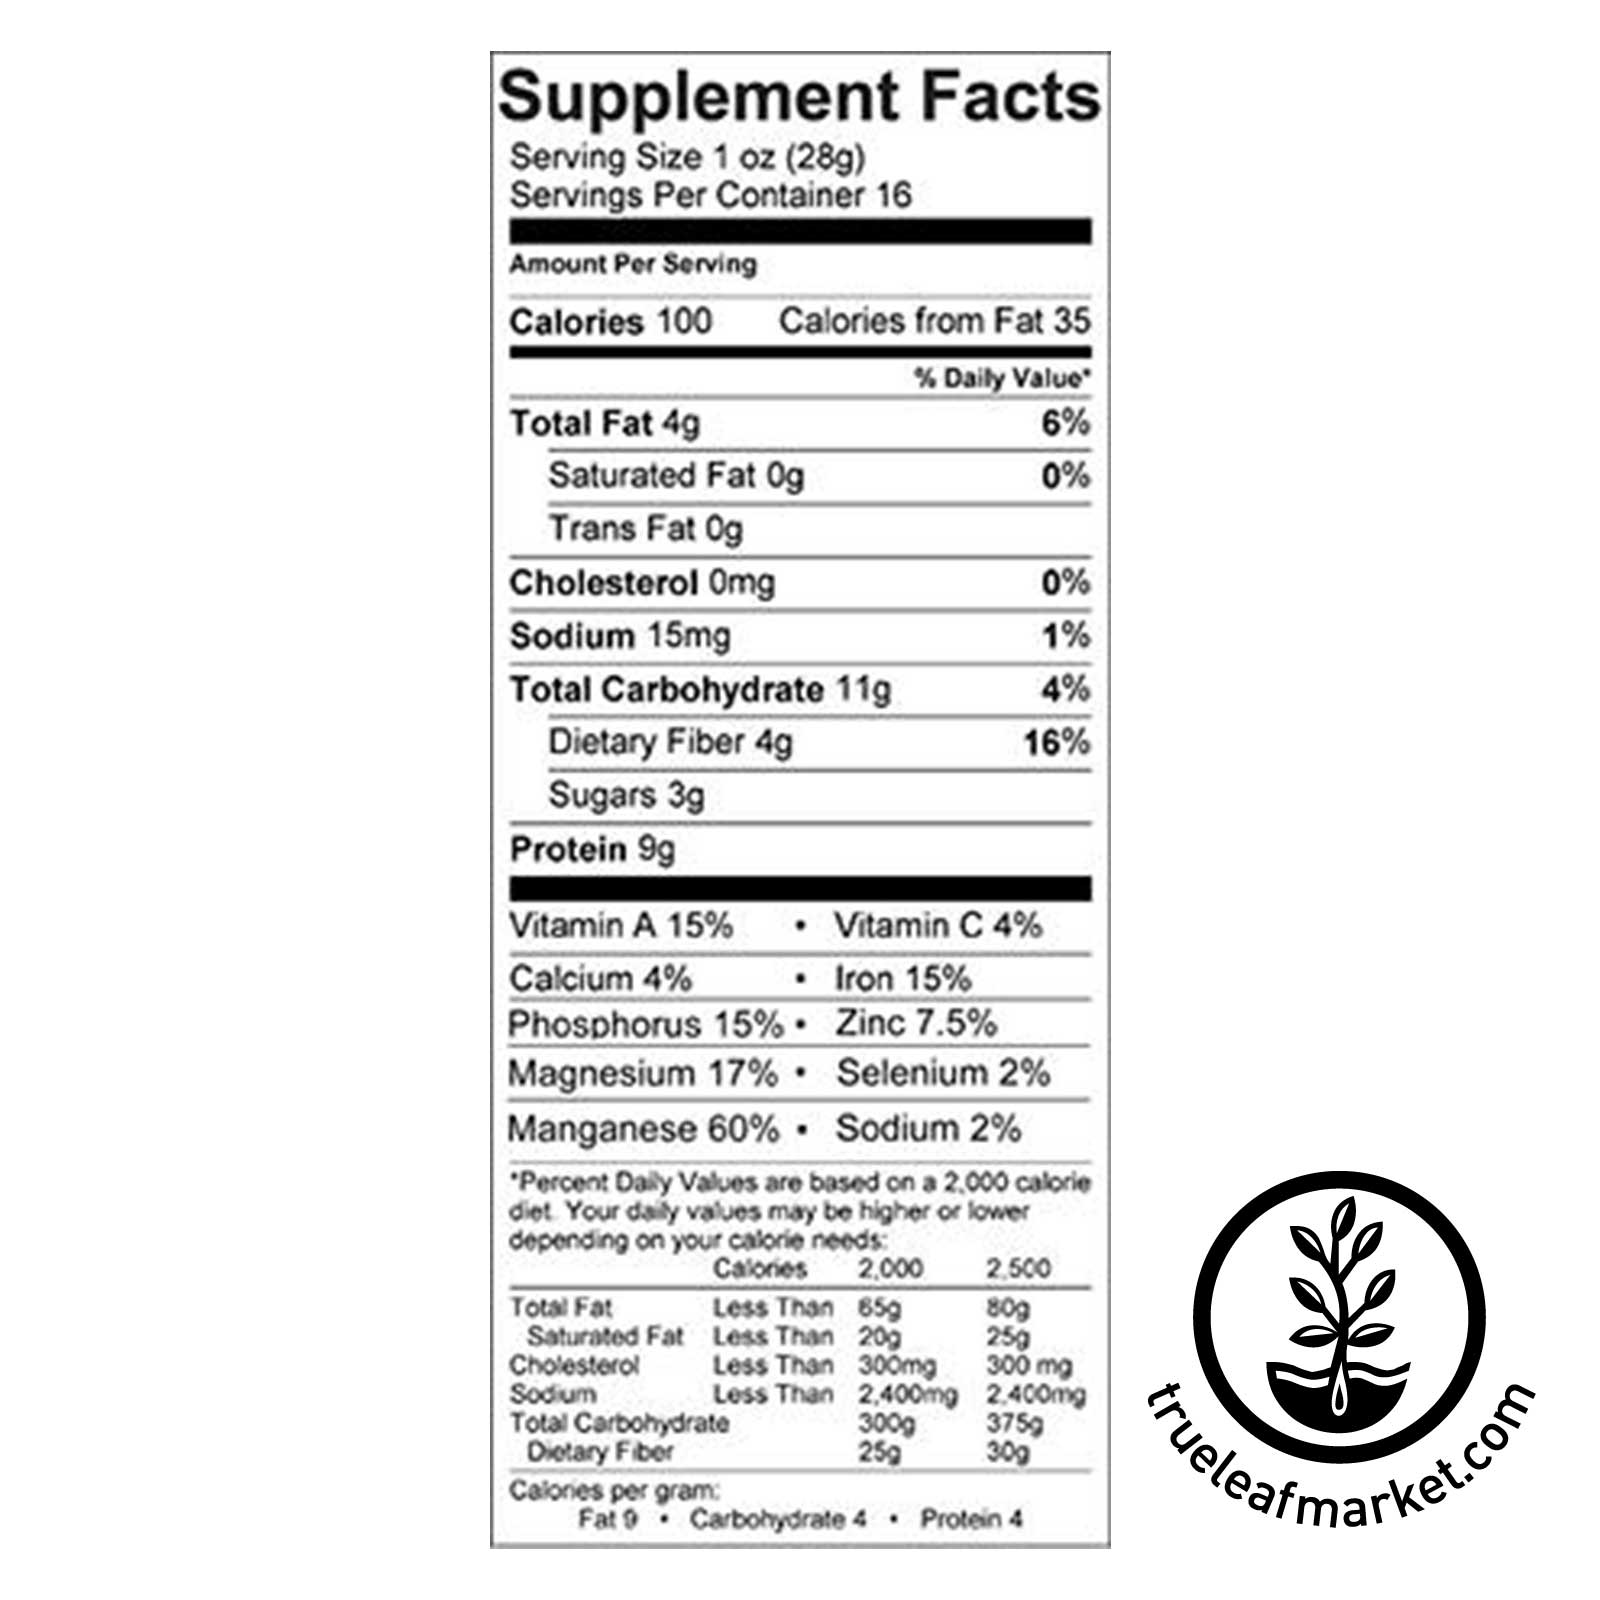 Sproutein Sprout Powder Supplemental Facts